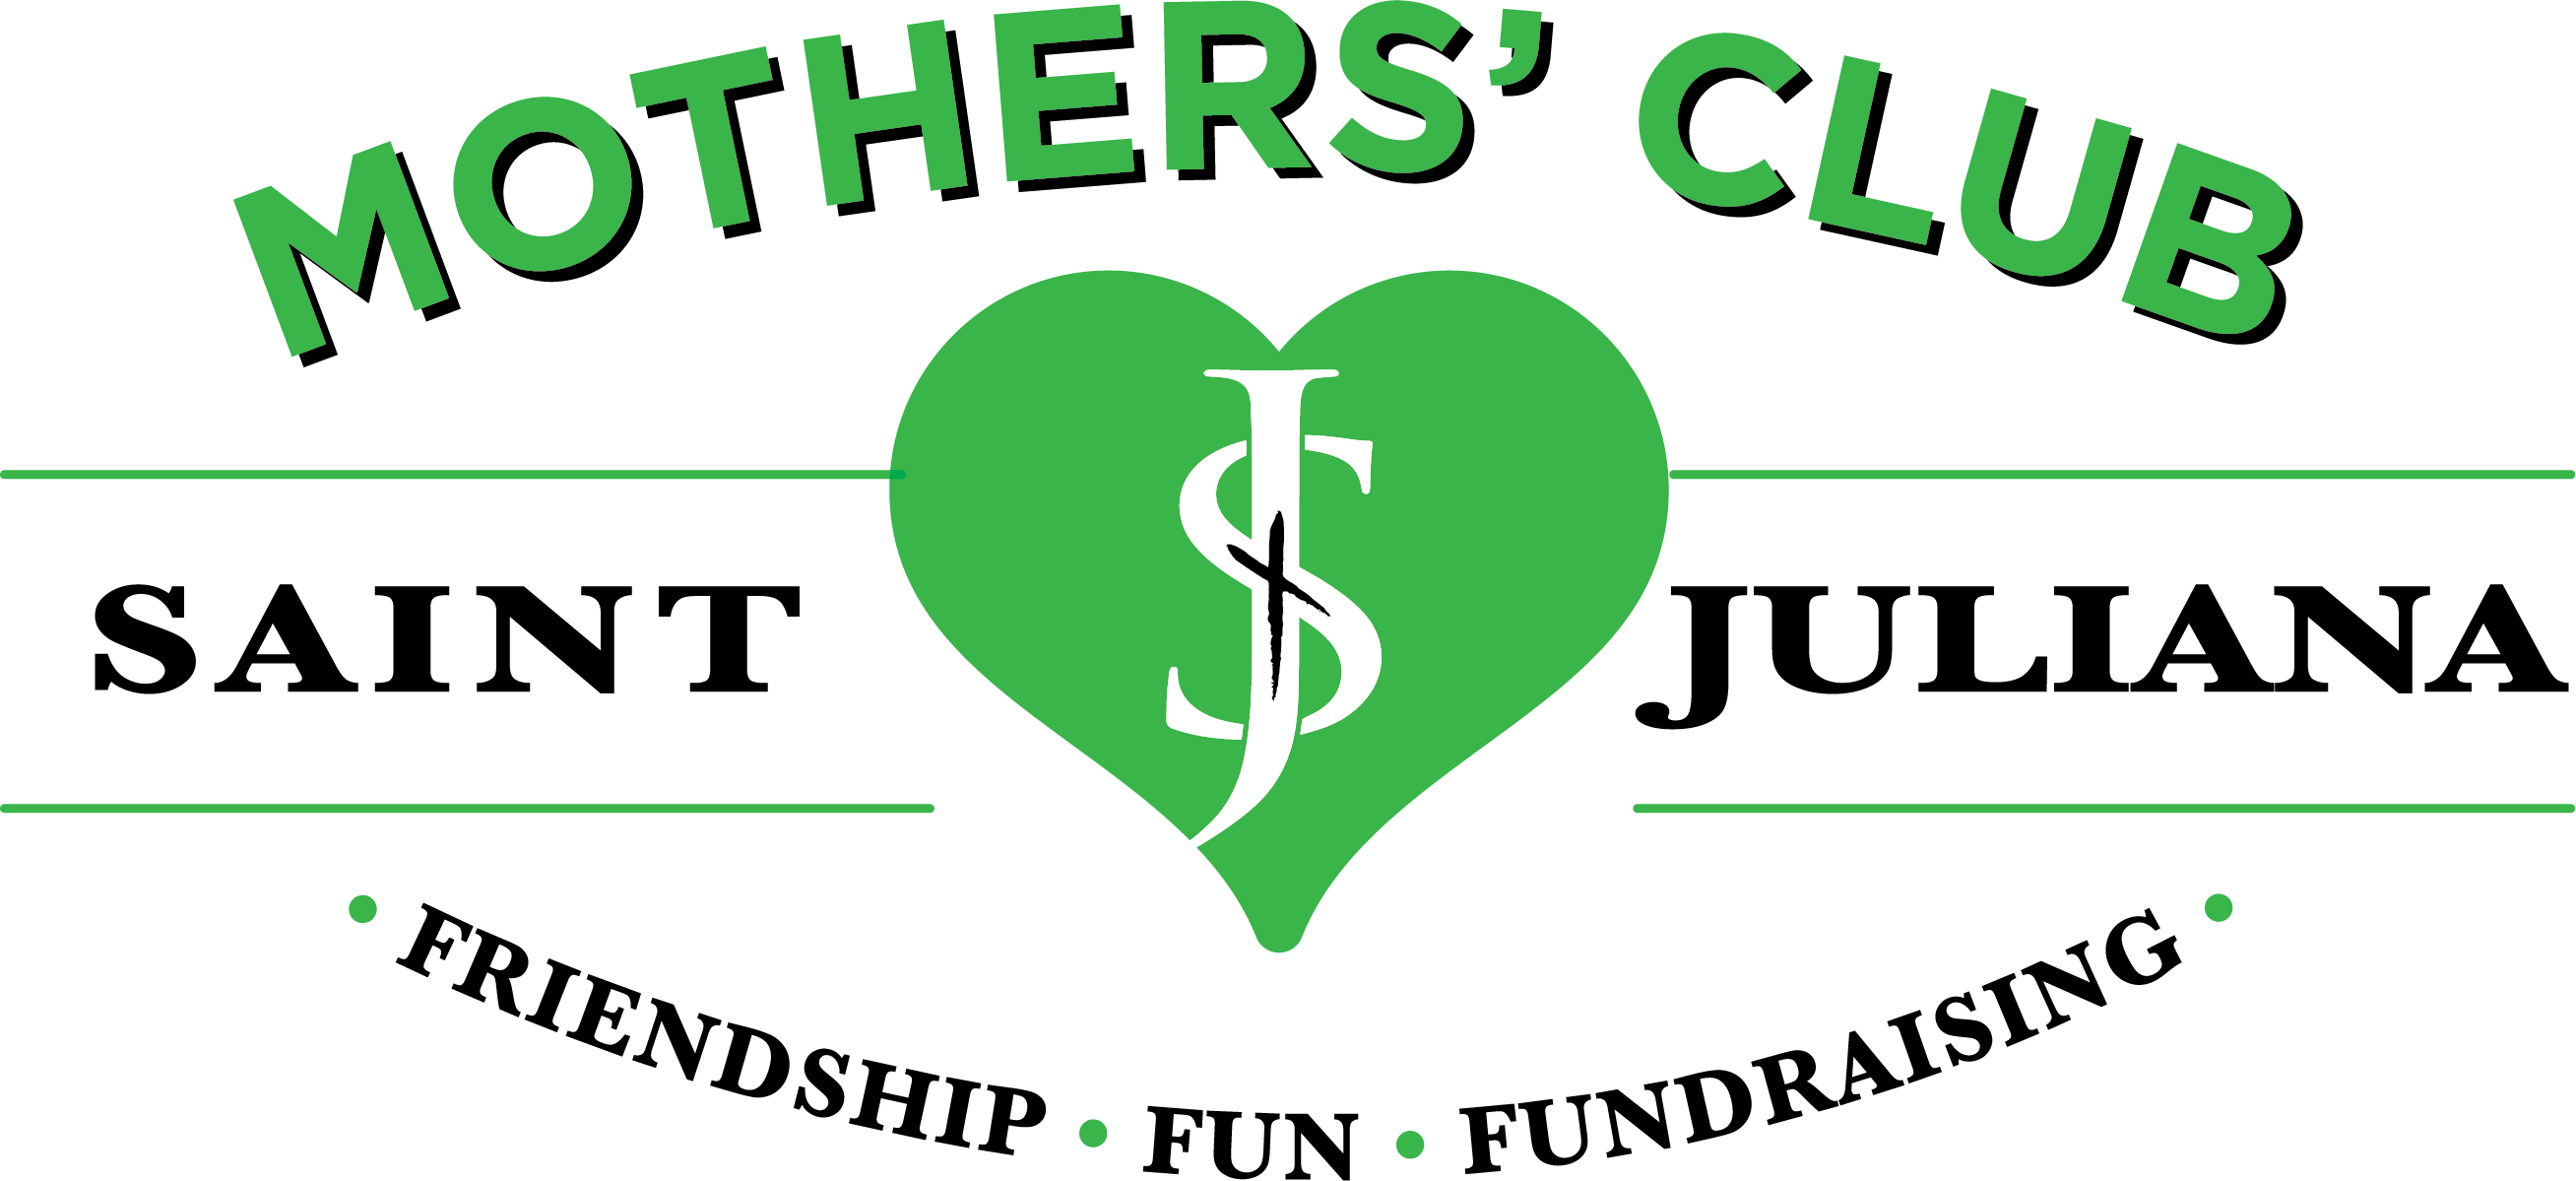 The Mothers' Club Blog